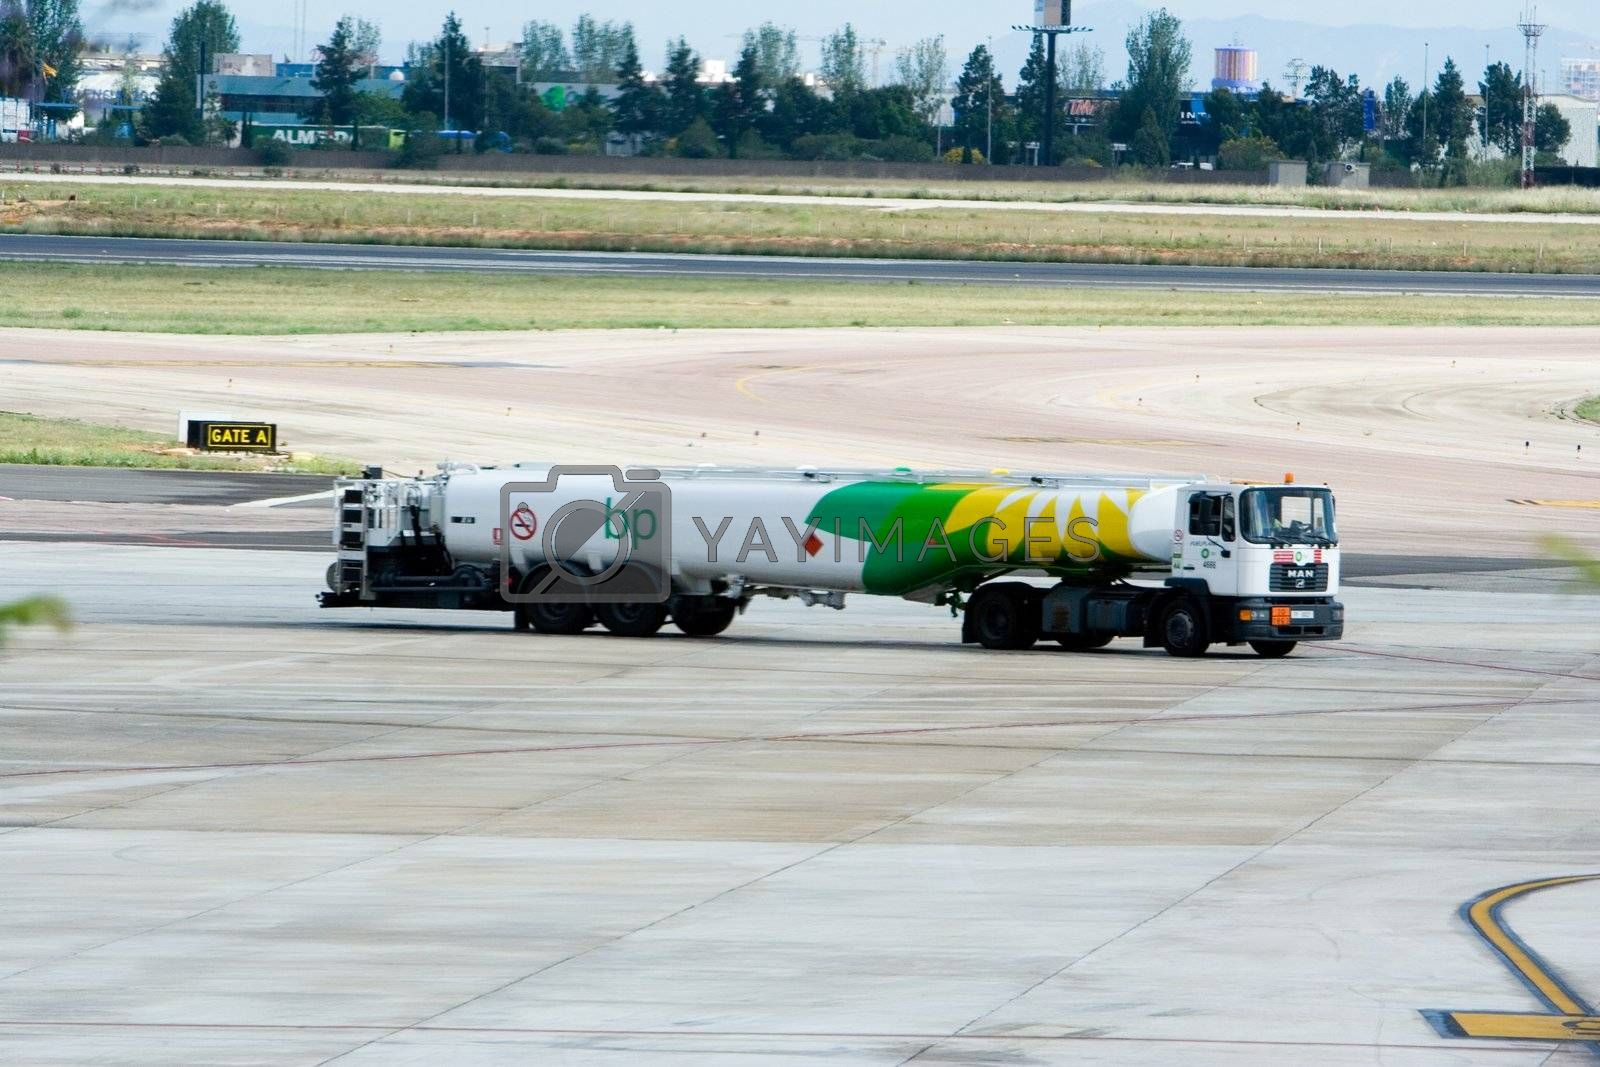 BP fuel truck waiting to refuel an airplane